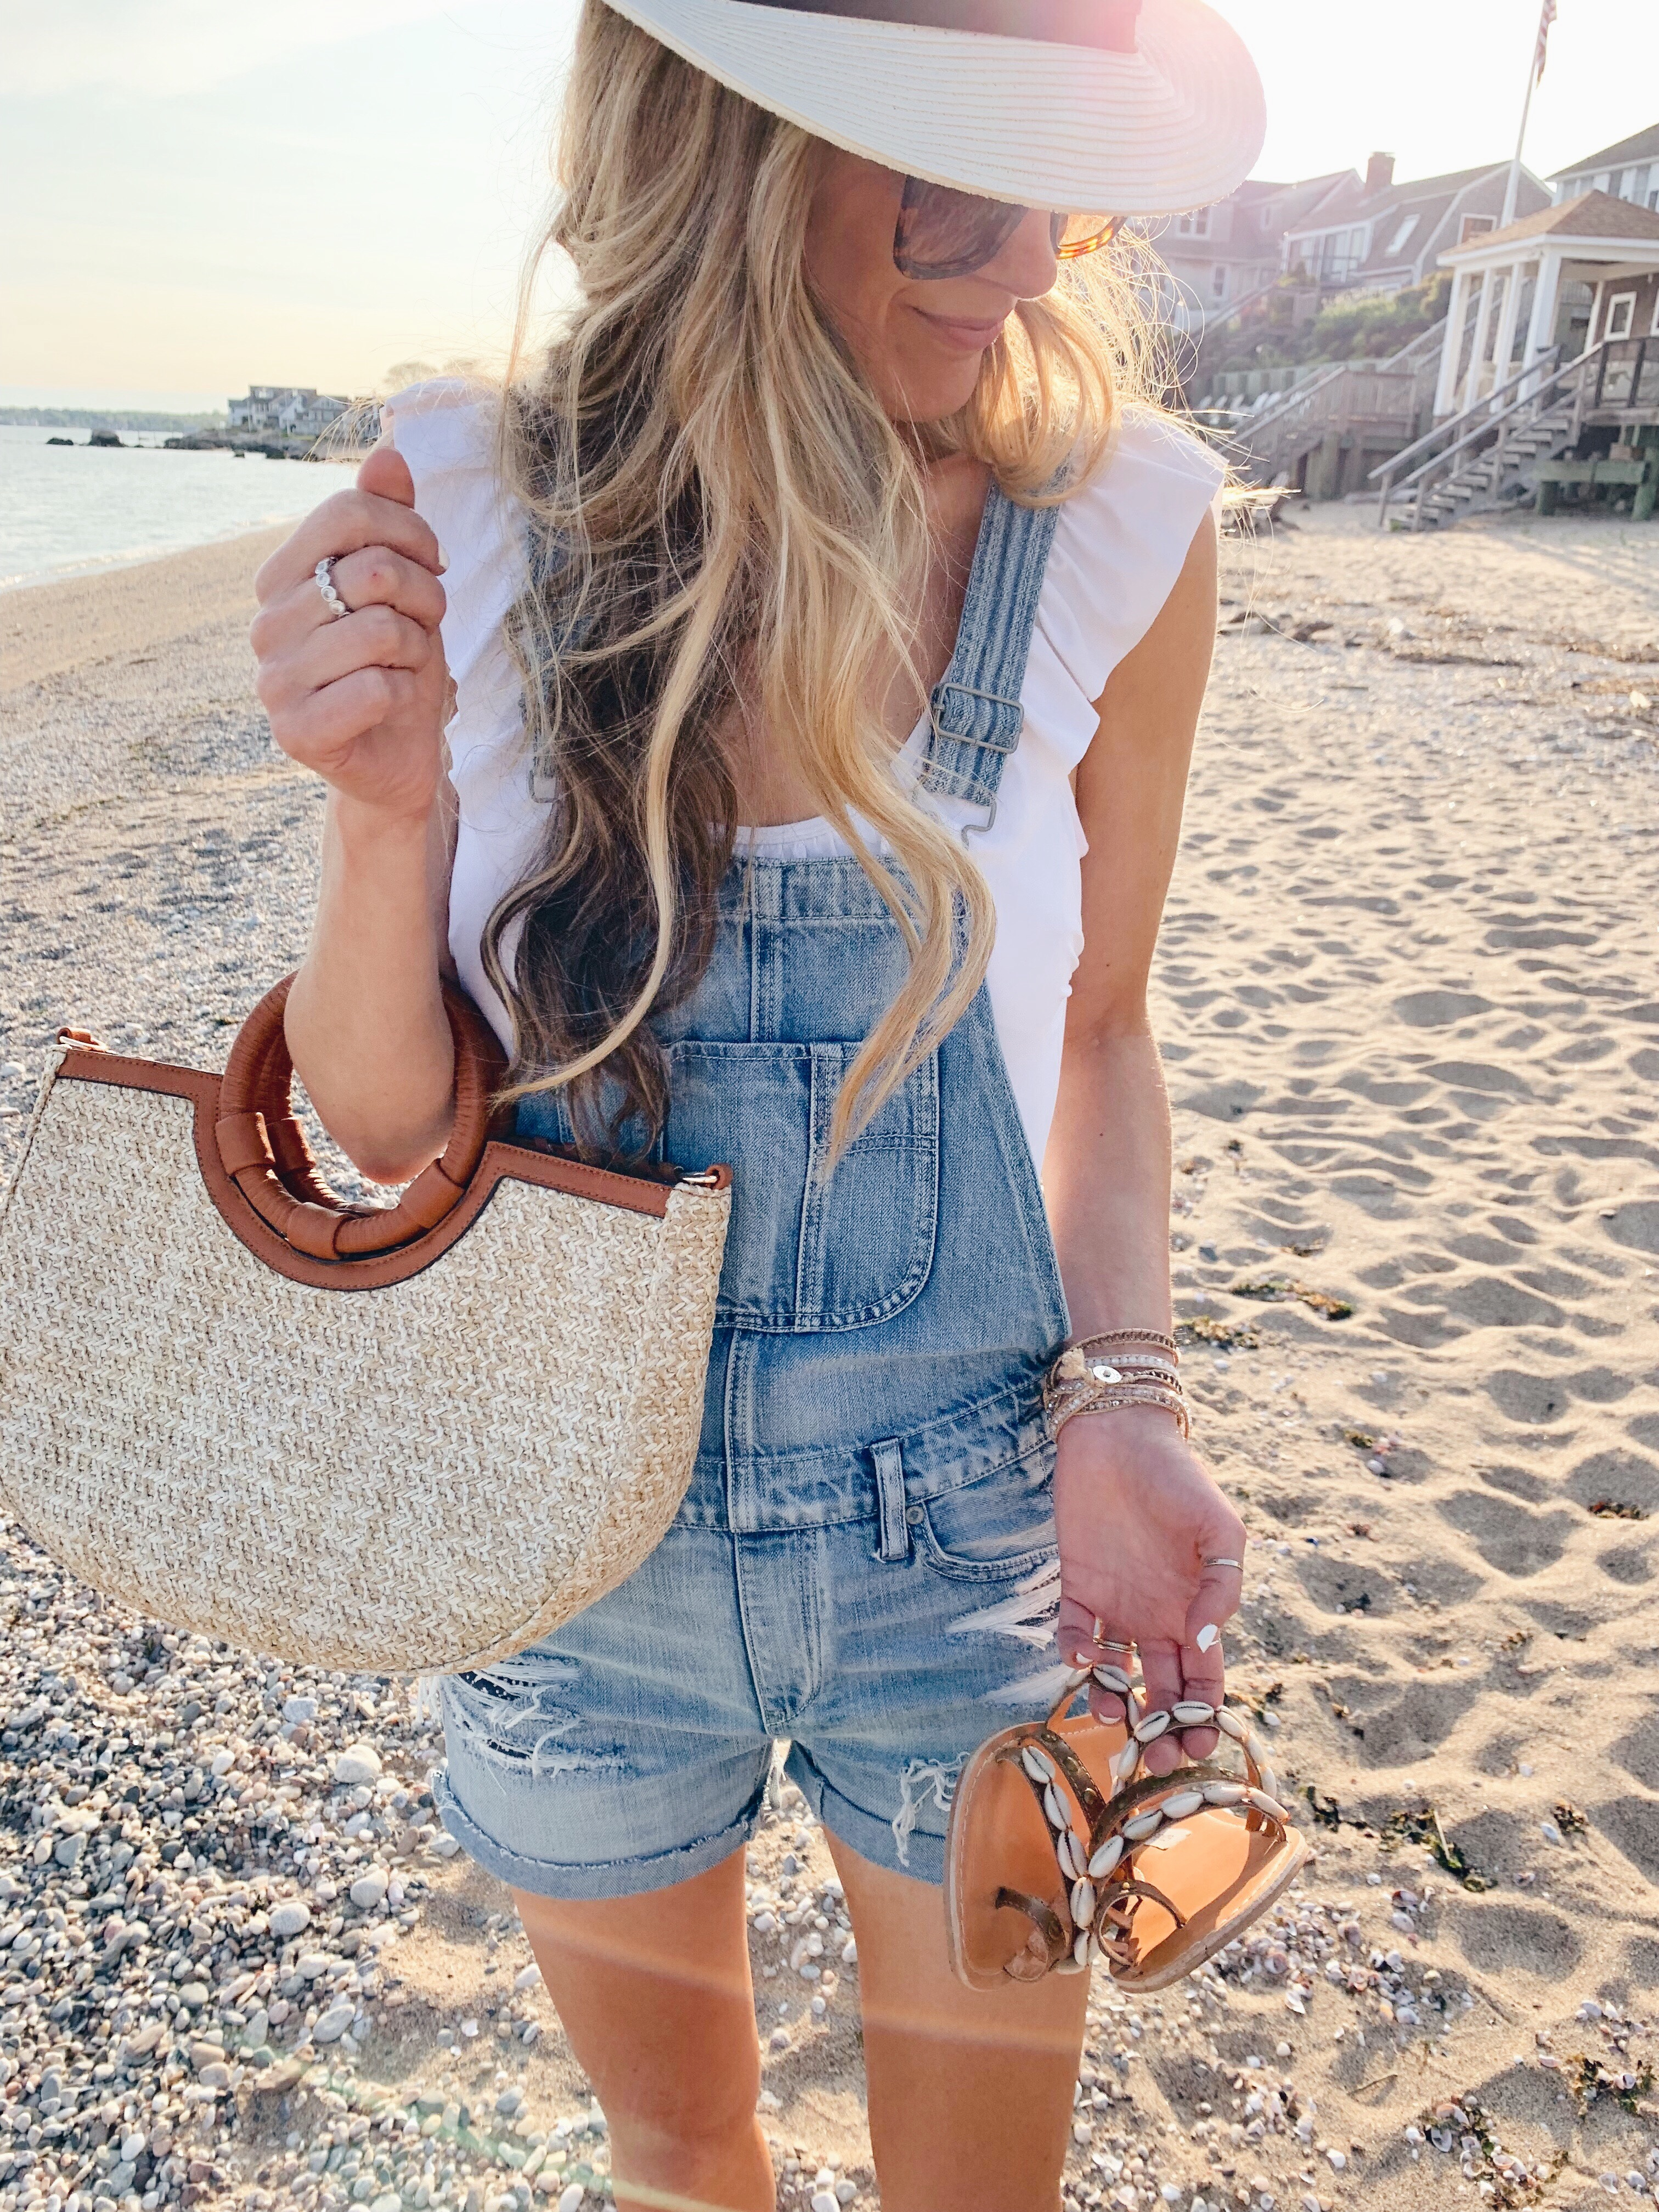 memorial day weekend sales and outfit ideas - overall shorts as a swim coverup - pinteresting plans connecticut fashion blogger